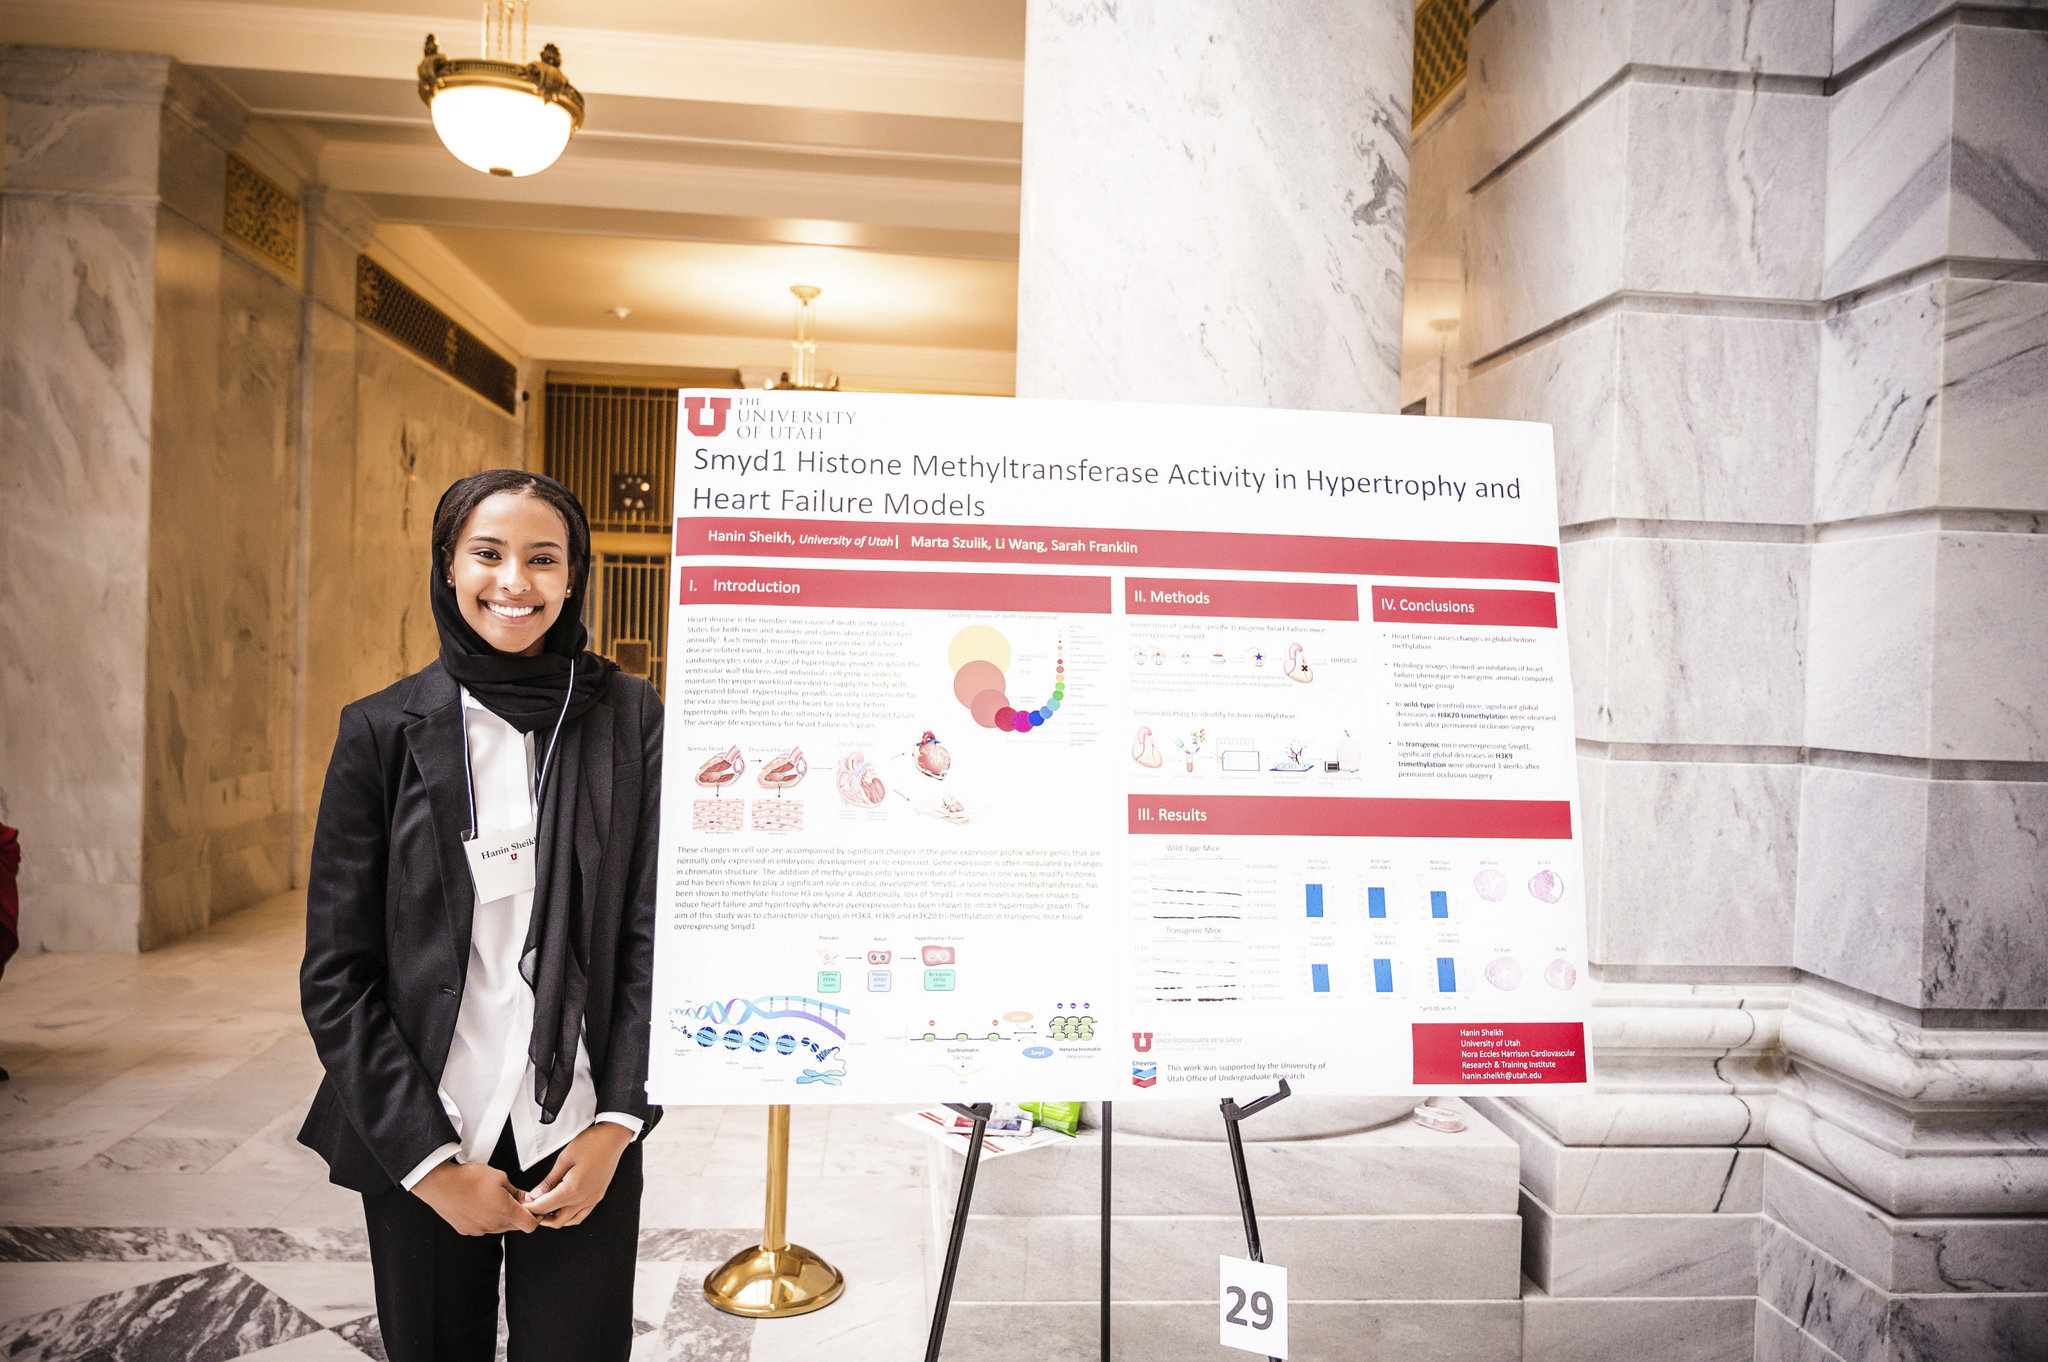 Hanin Sheikh was chosen to represent the University of Utah and CVRTI and showcase her research for Utah lawmakers and the general public